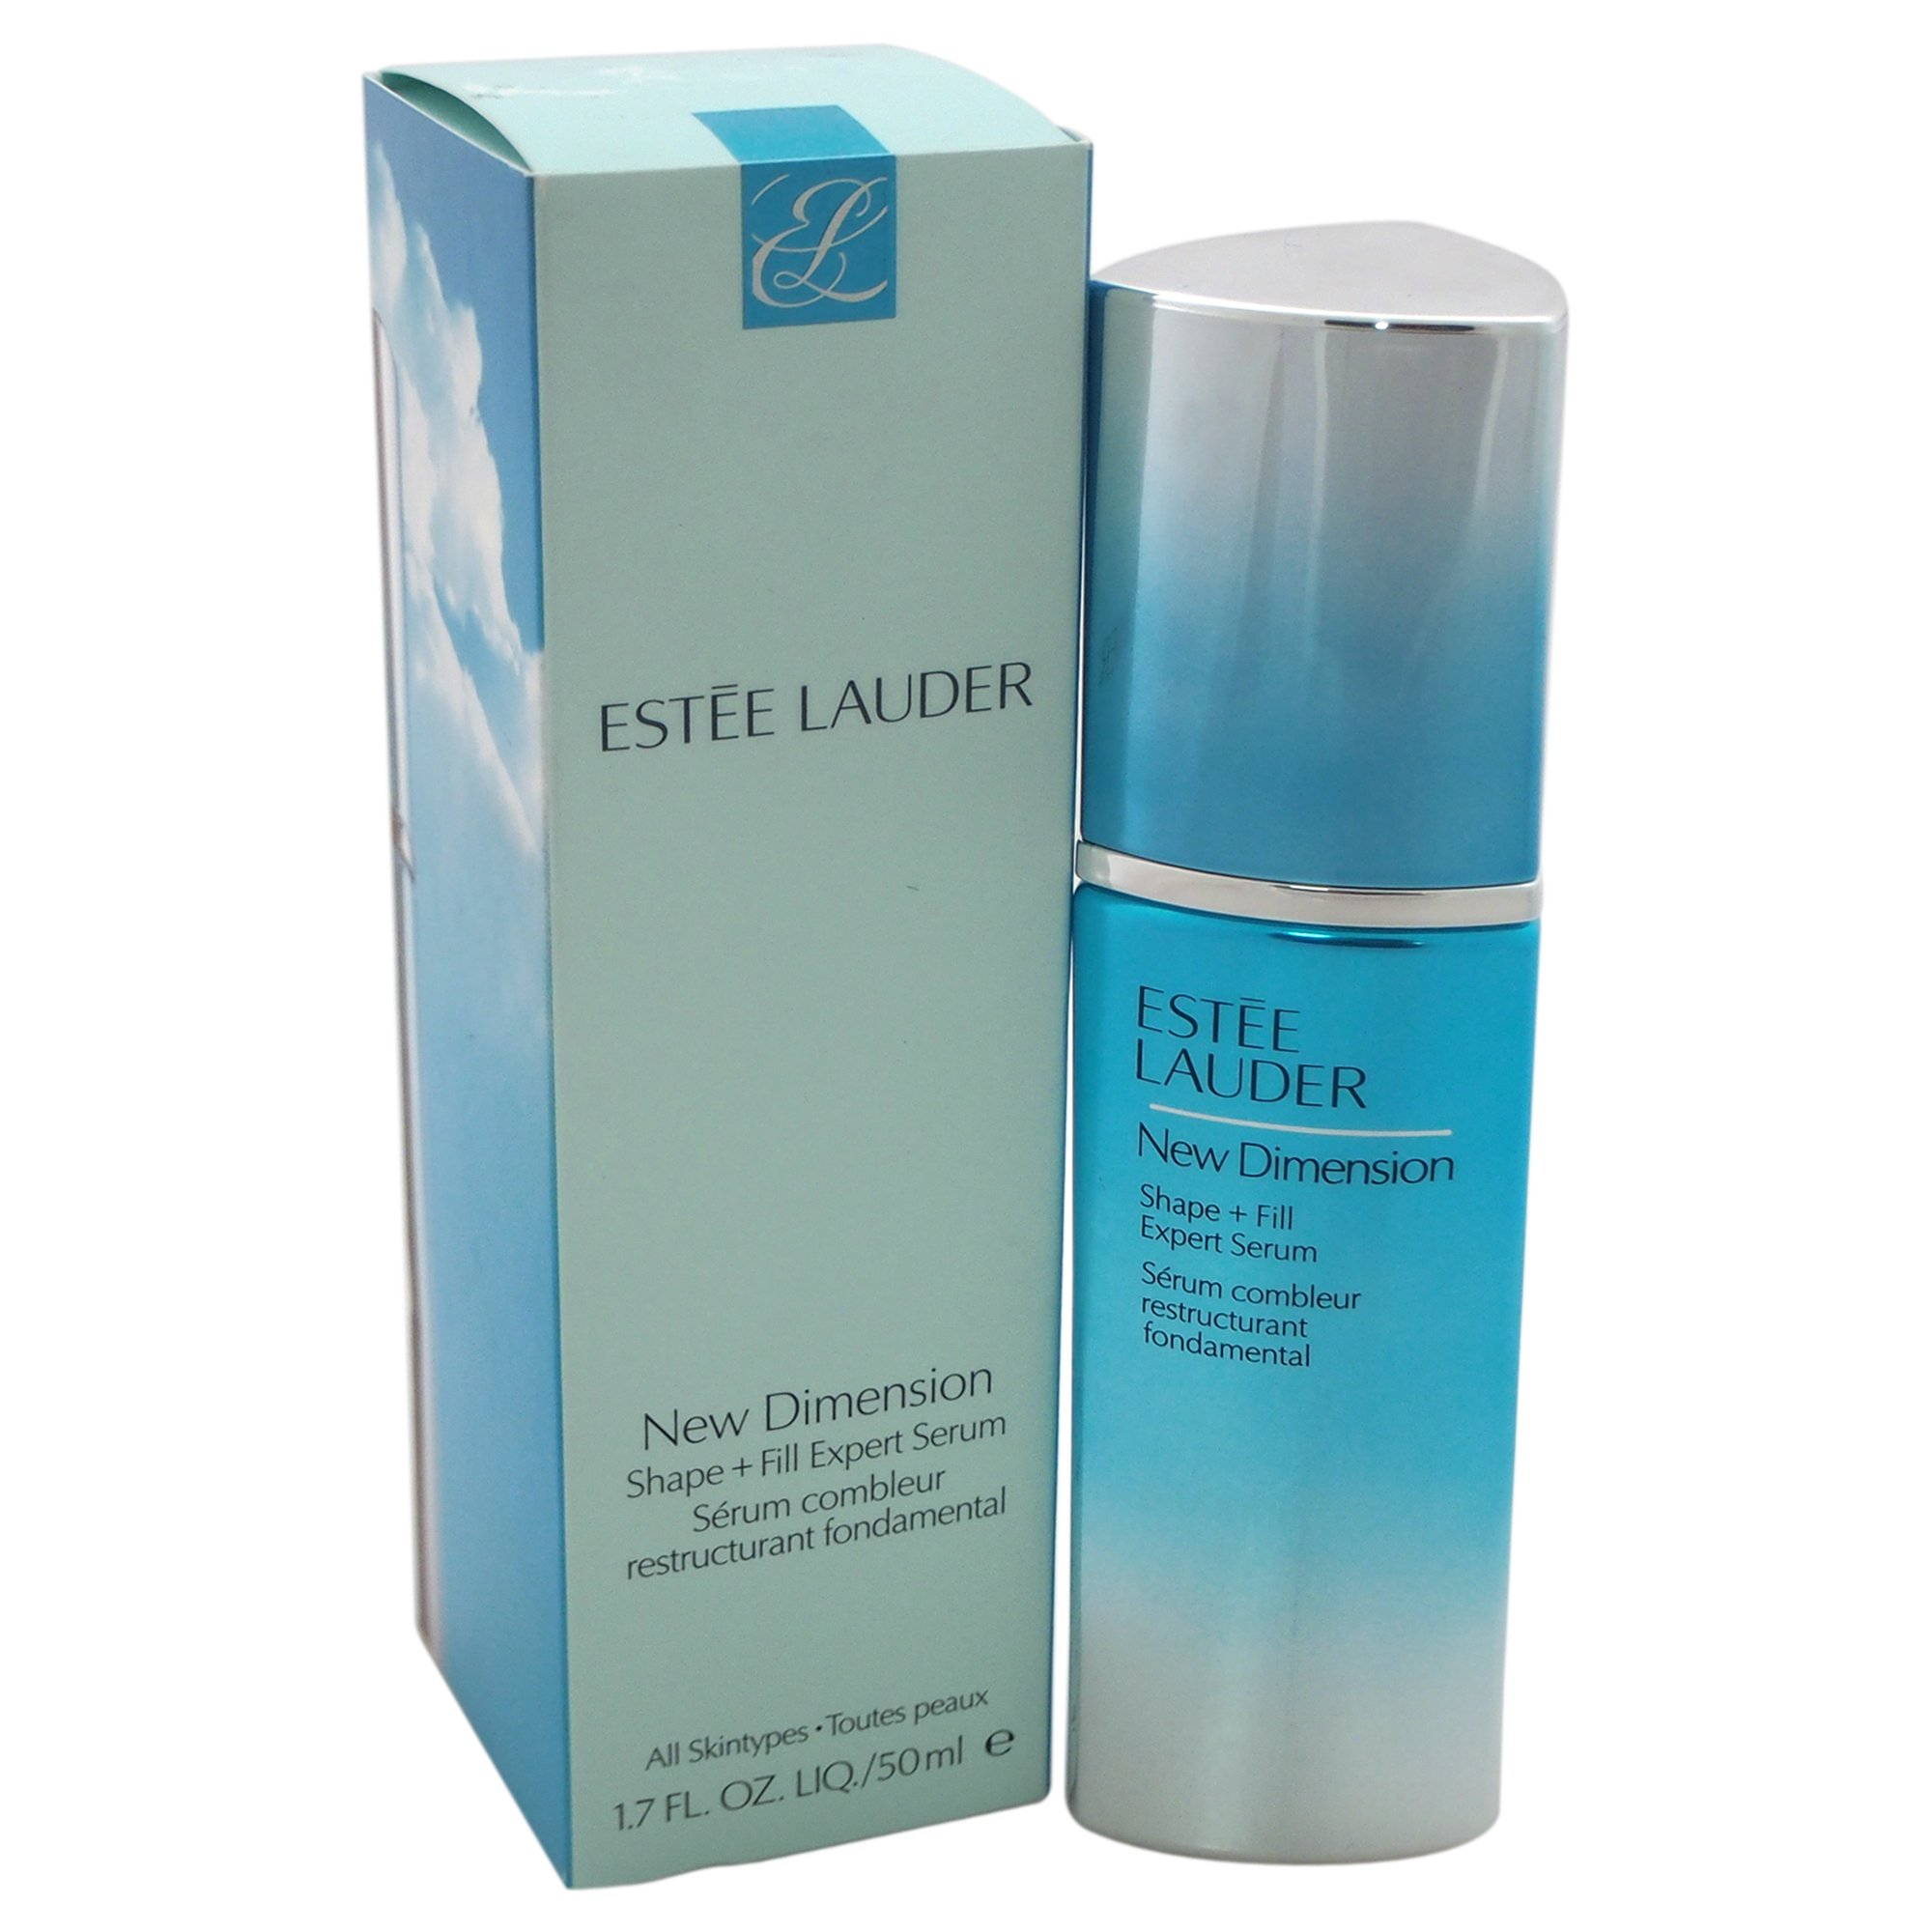 estee lauder new dimension eye cream review